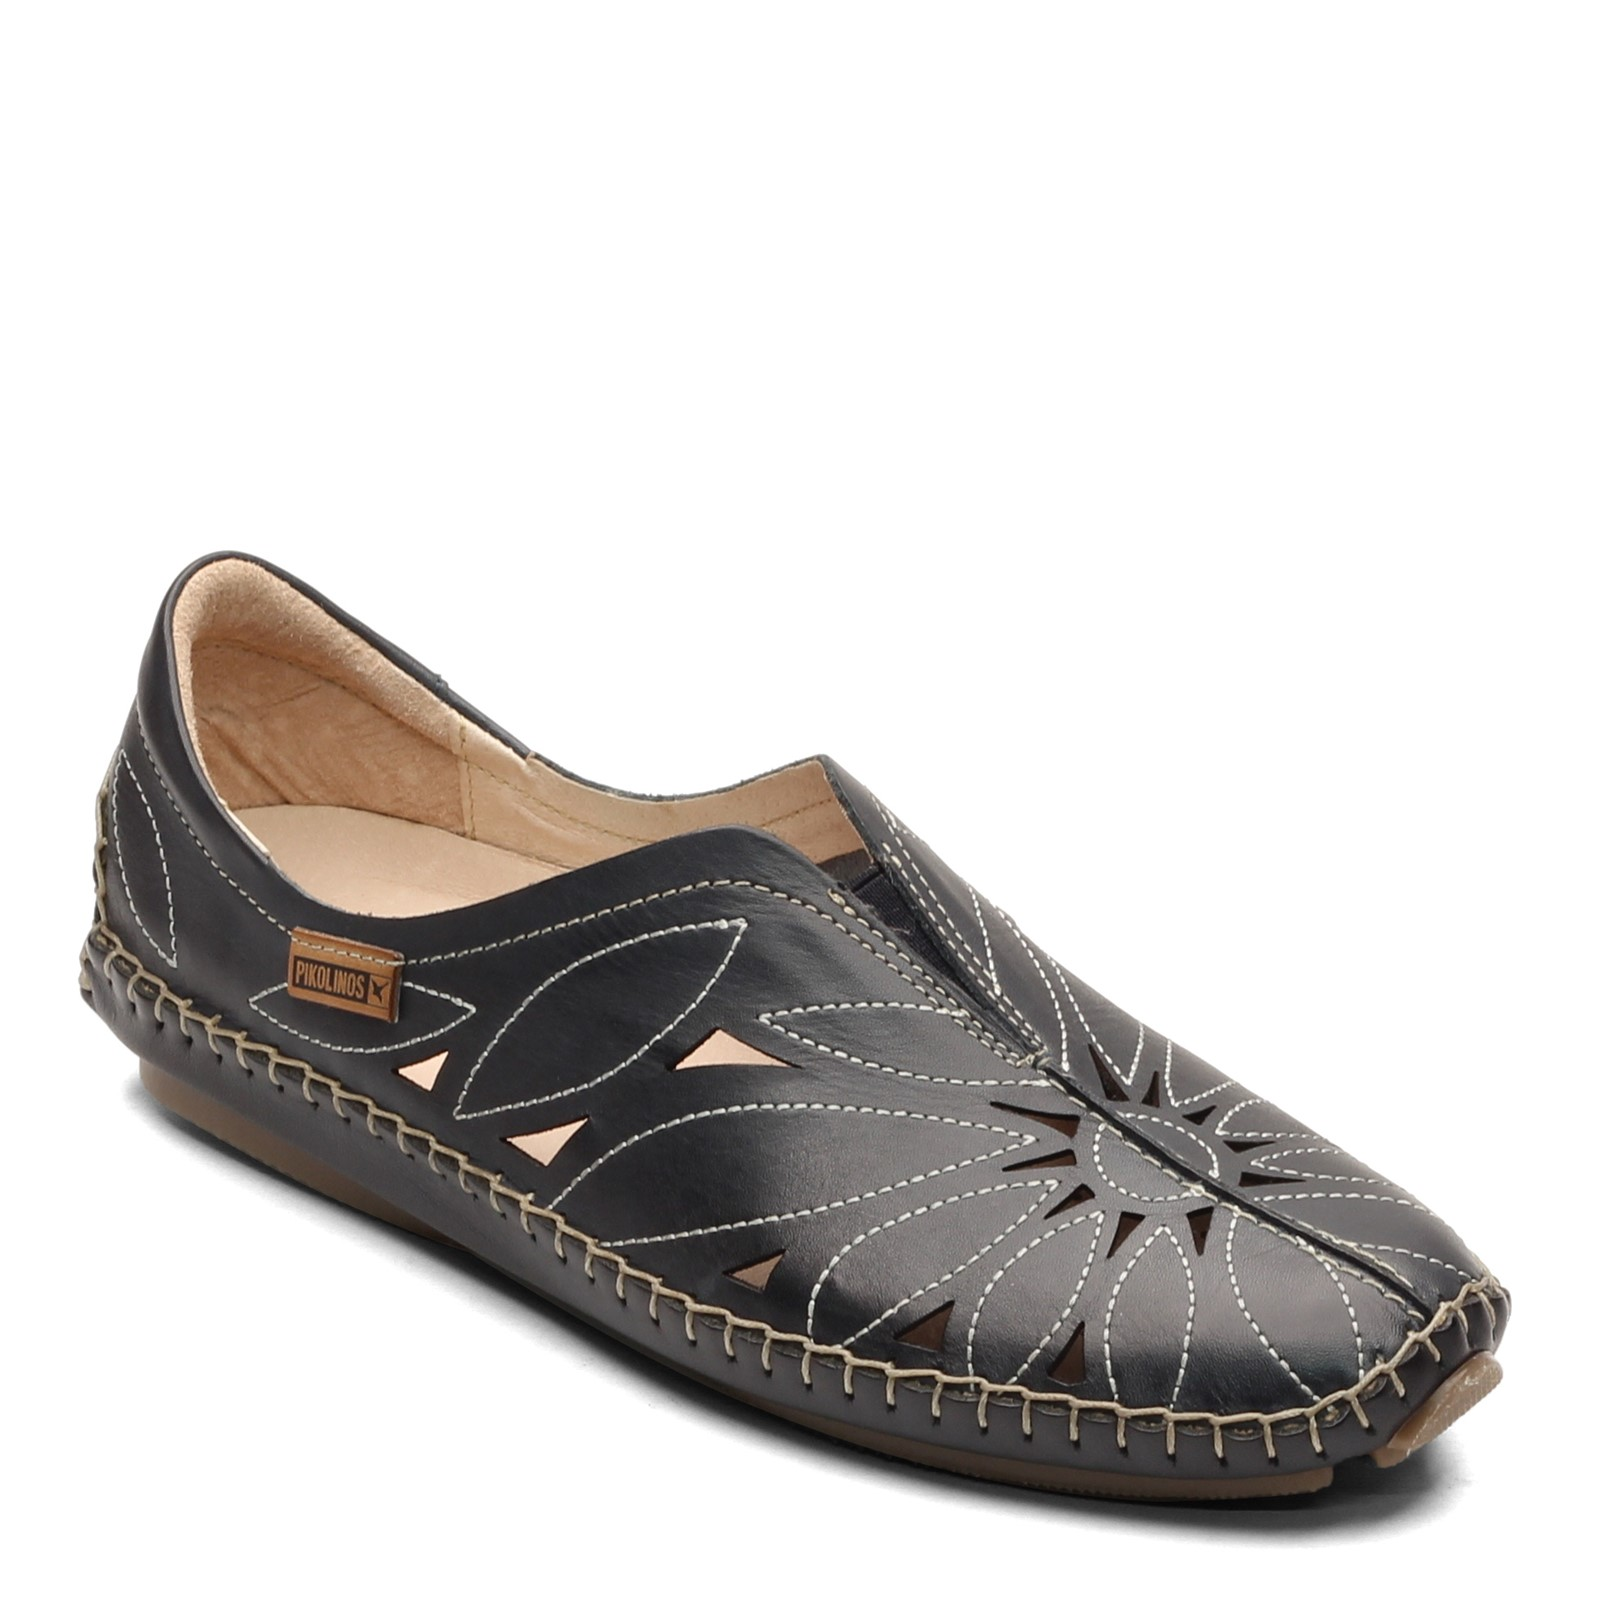 Women's Pikolino, Jerez 7399 Slip On Leather Flats